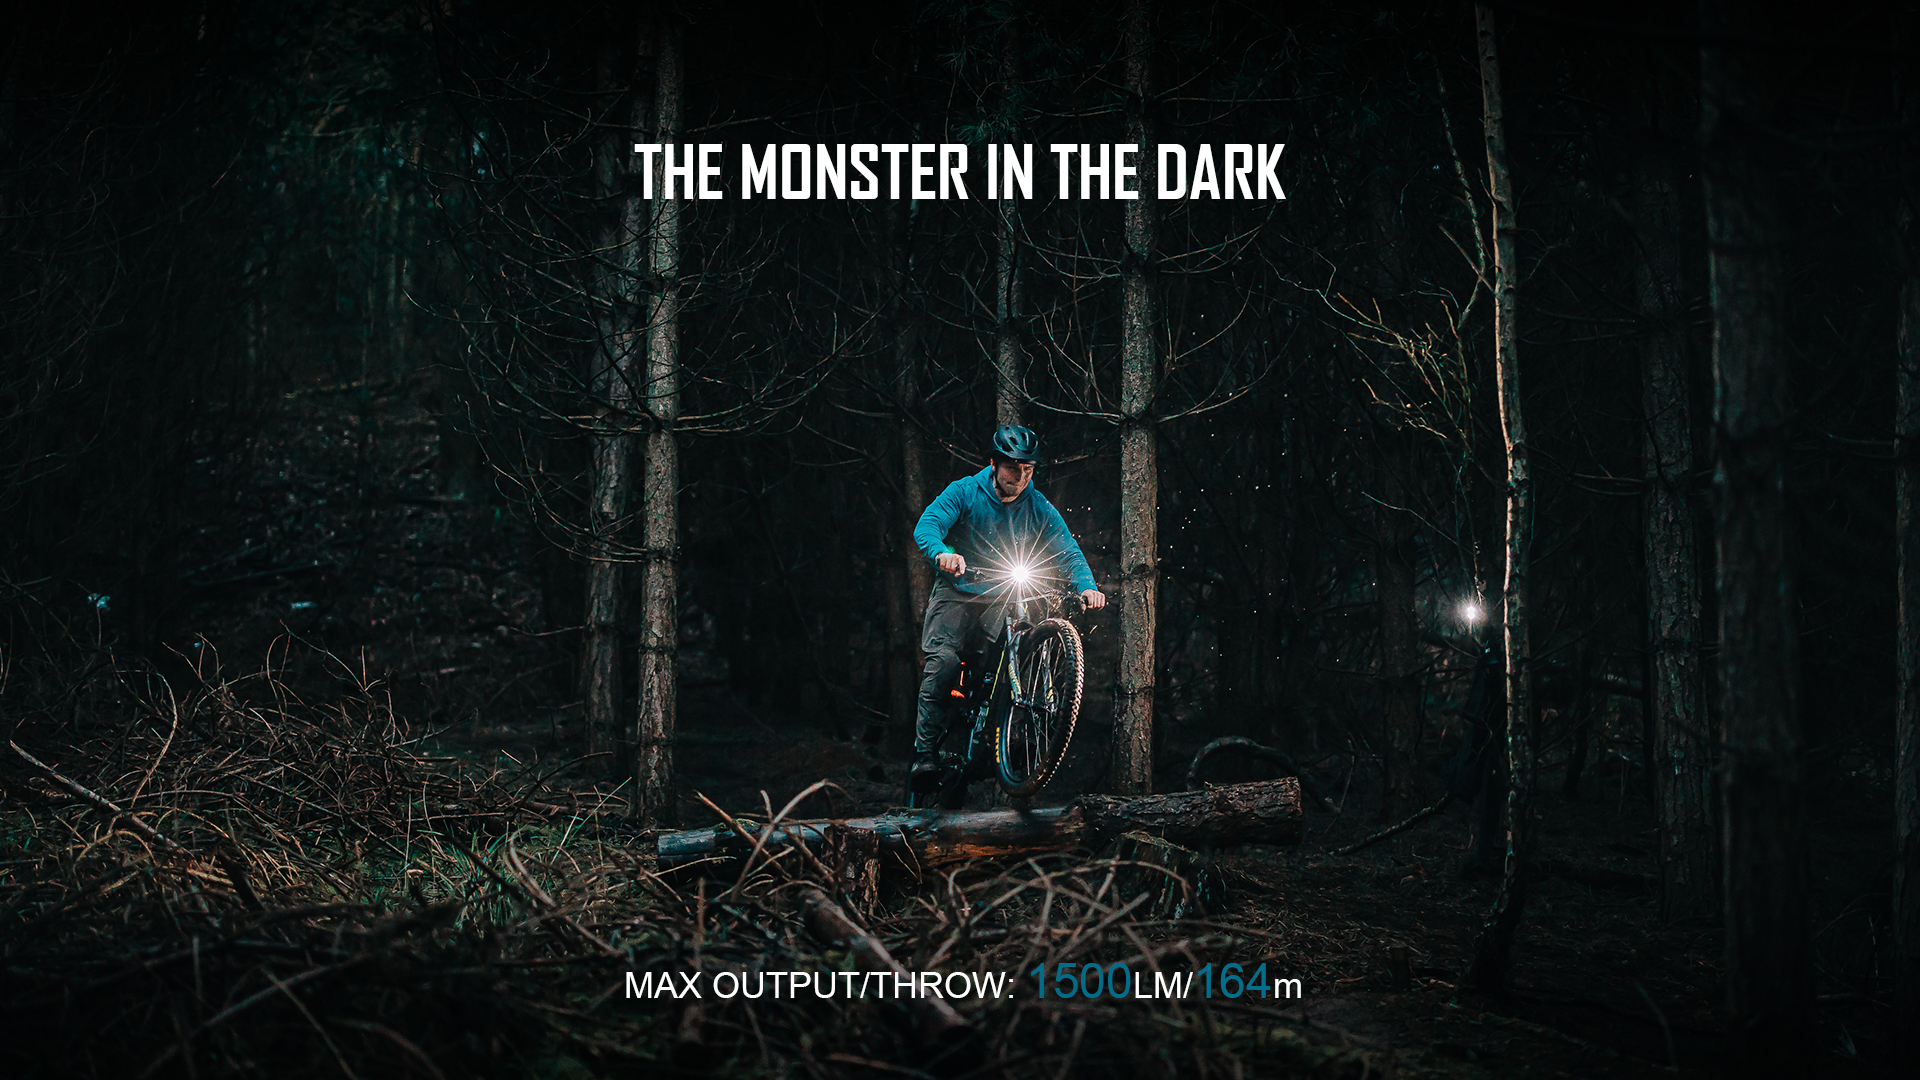 The Monster in the Dark RN1500 Bicycle Front Light